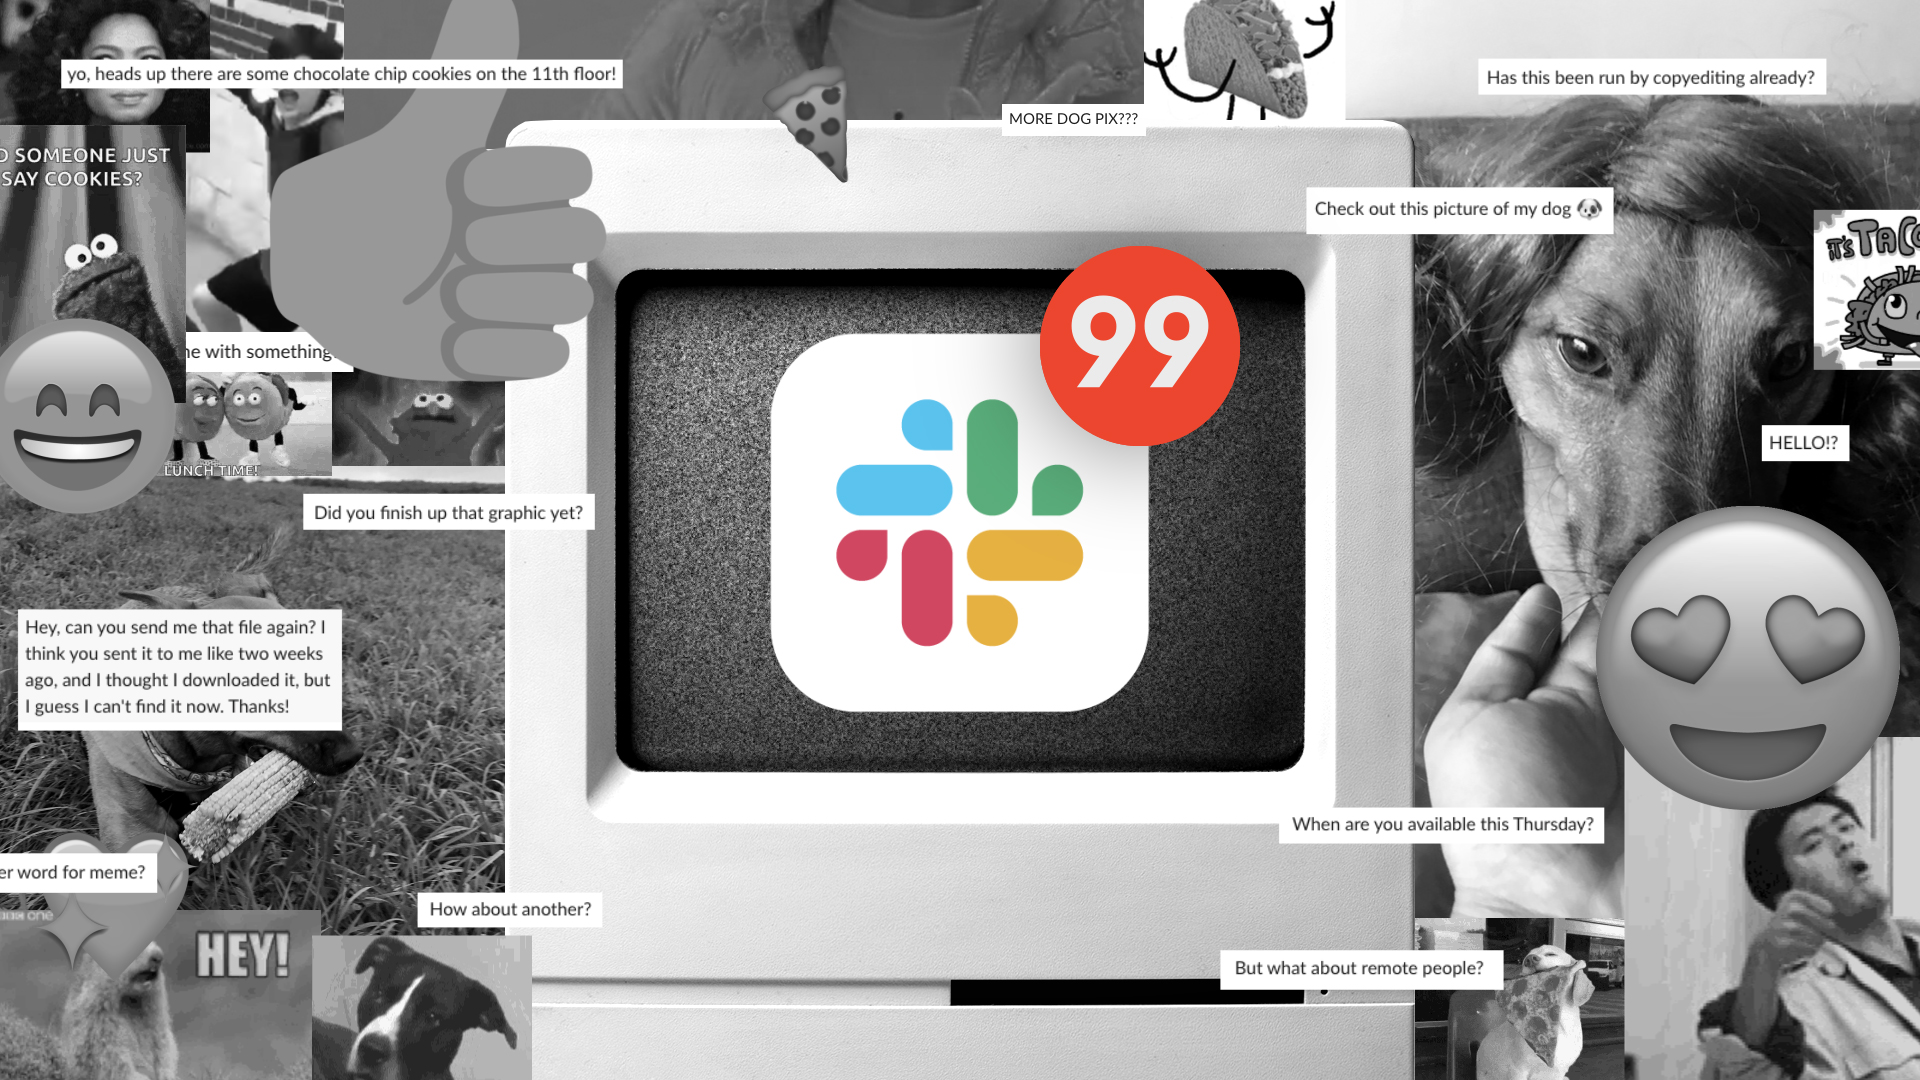 A computer screen with the Slack app showing 99 unread messages.